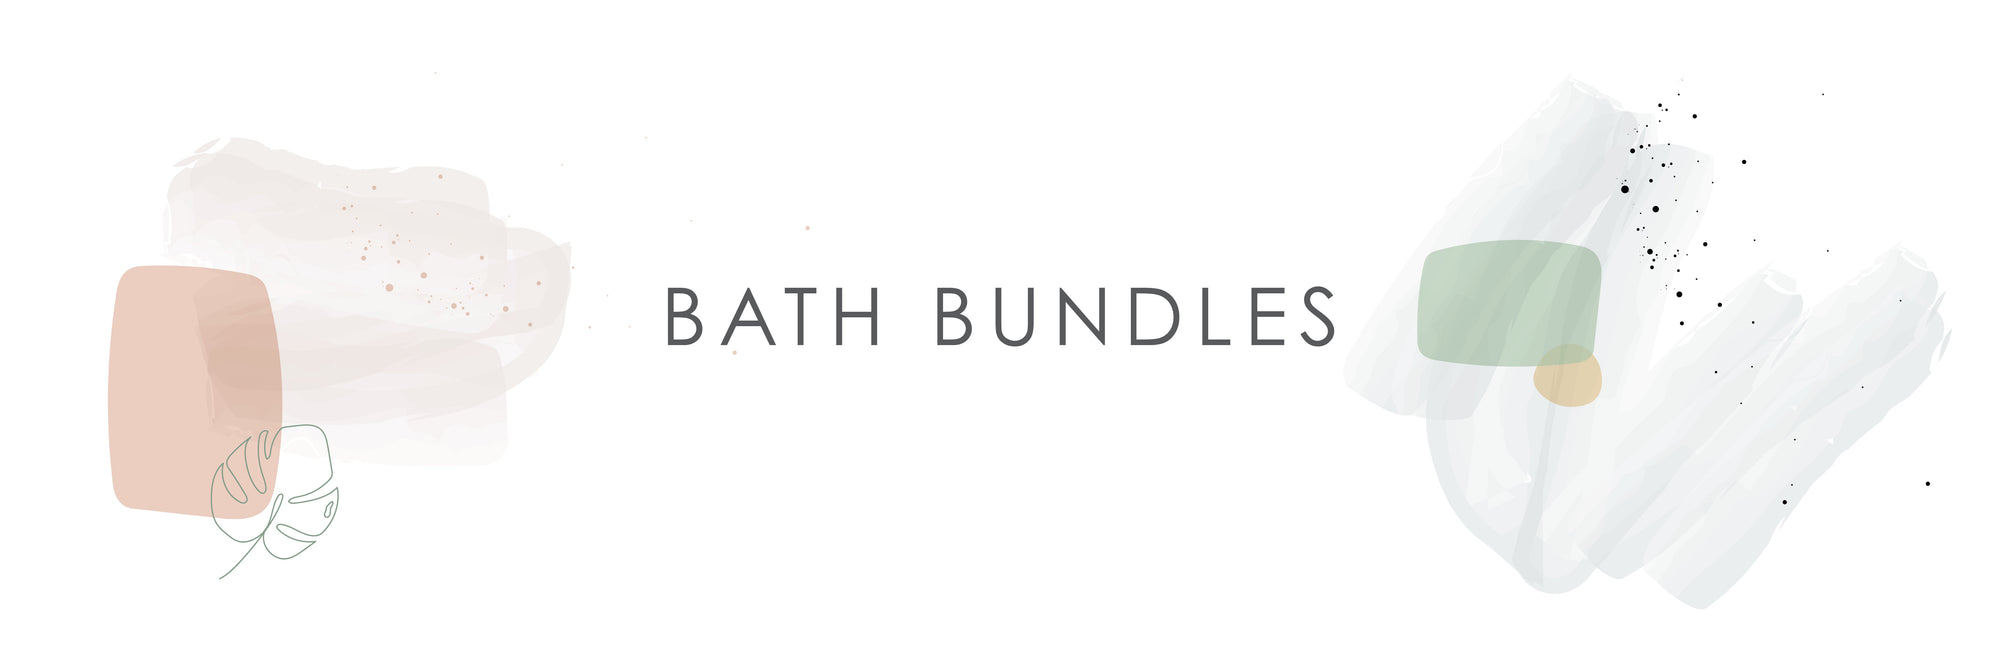 bath bundles